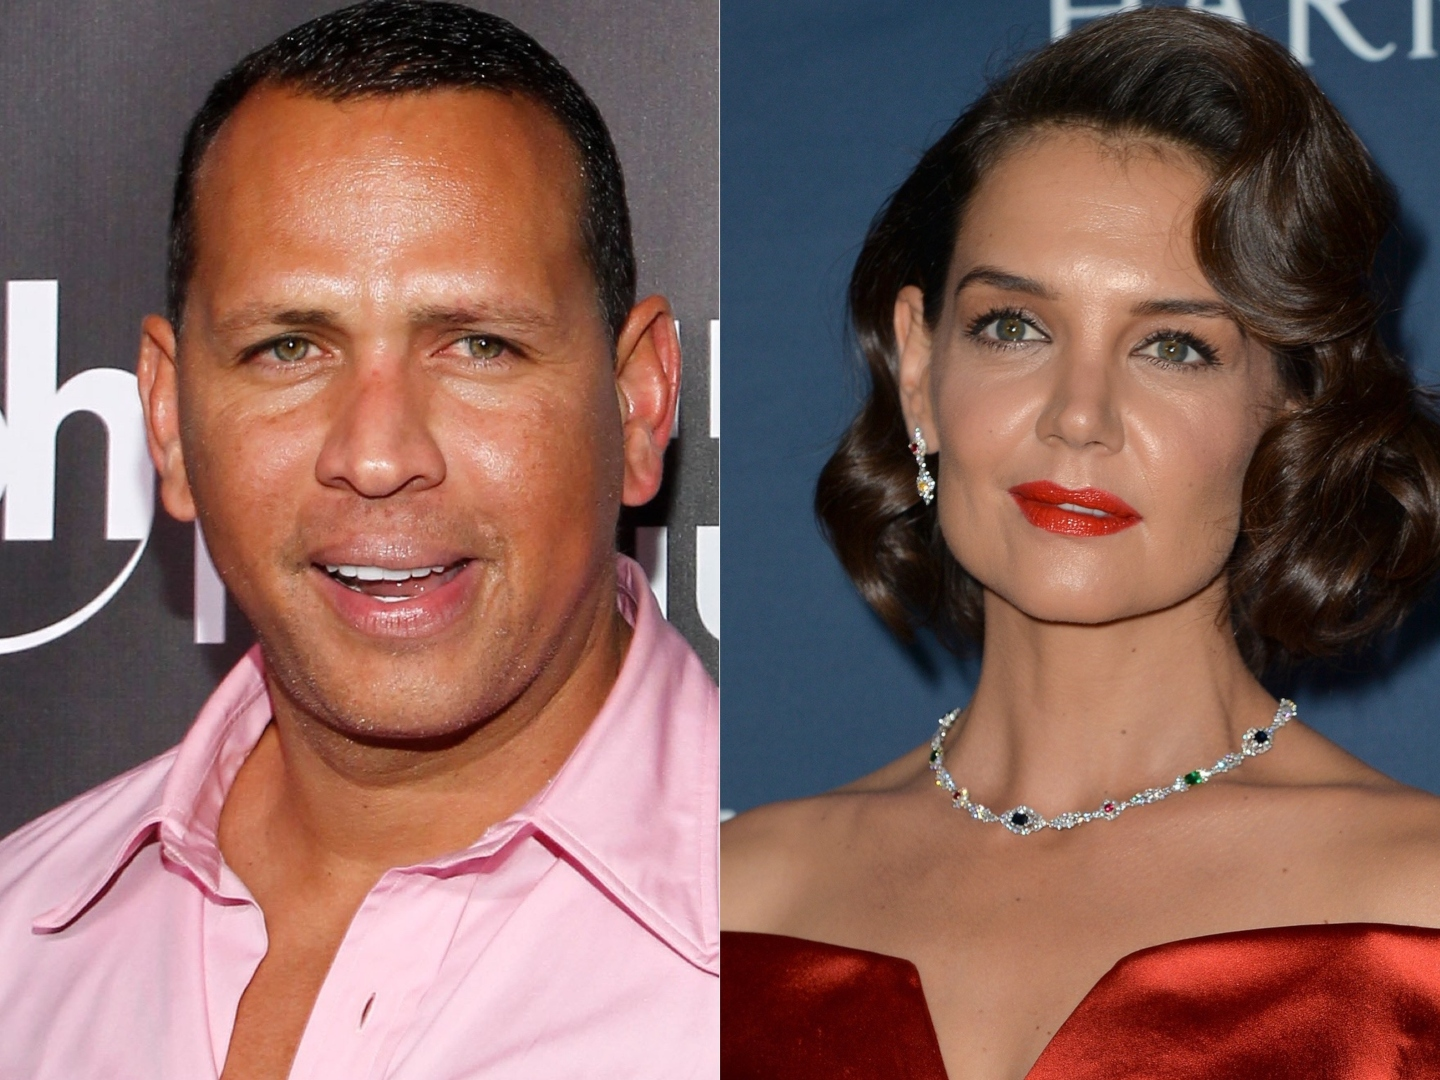 katie-holmes-and-alex-rodriguez-dating-the-truth-about-the-pictures-of-him-leaving-her-apartment-building